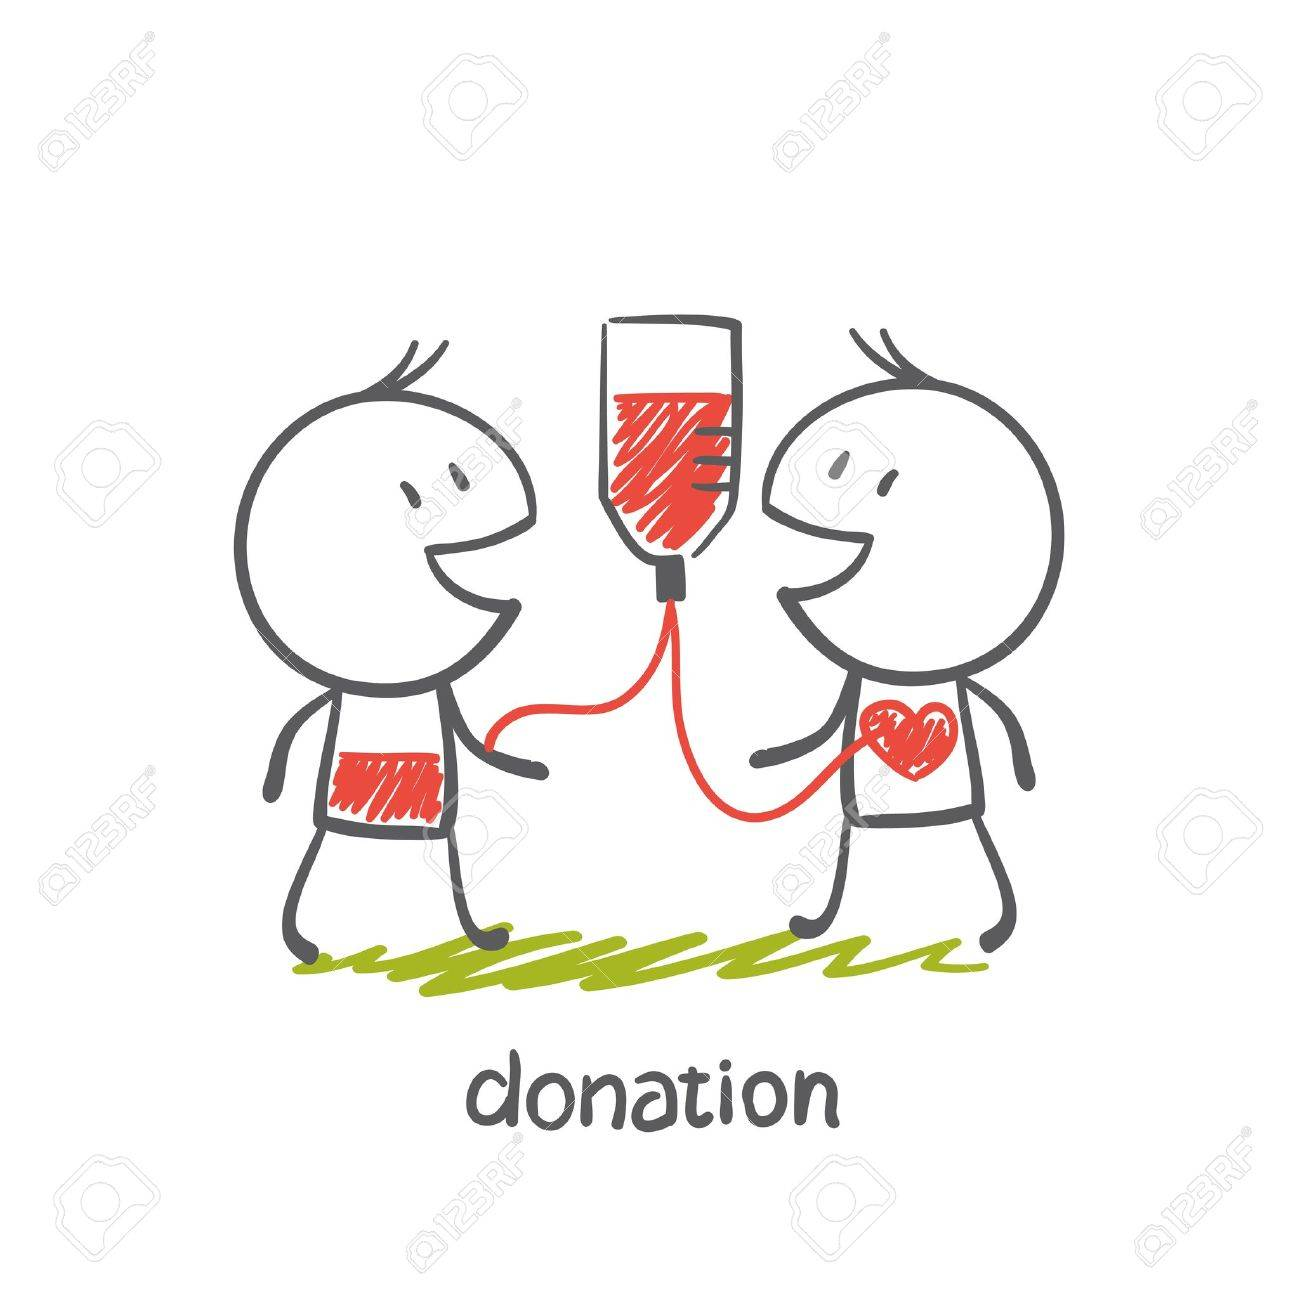 persons engaged in the donation illustration - 36067801